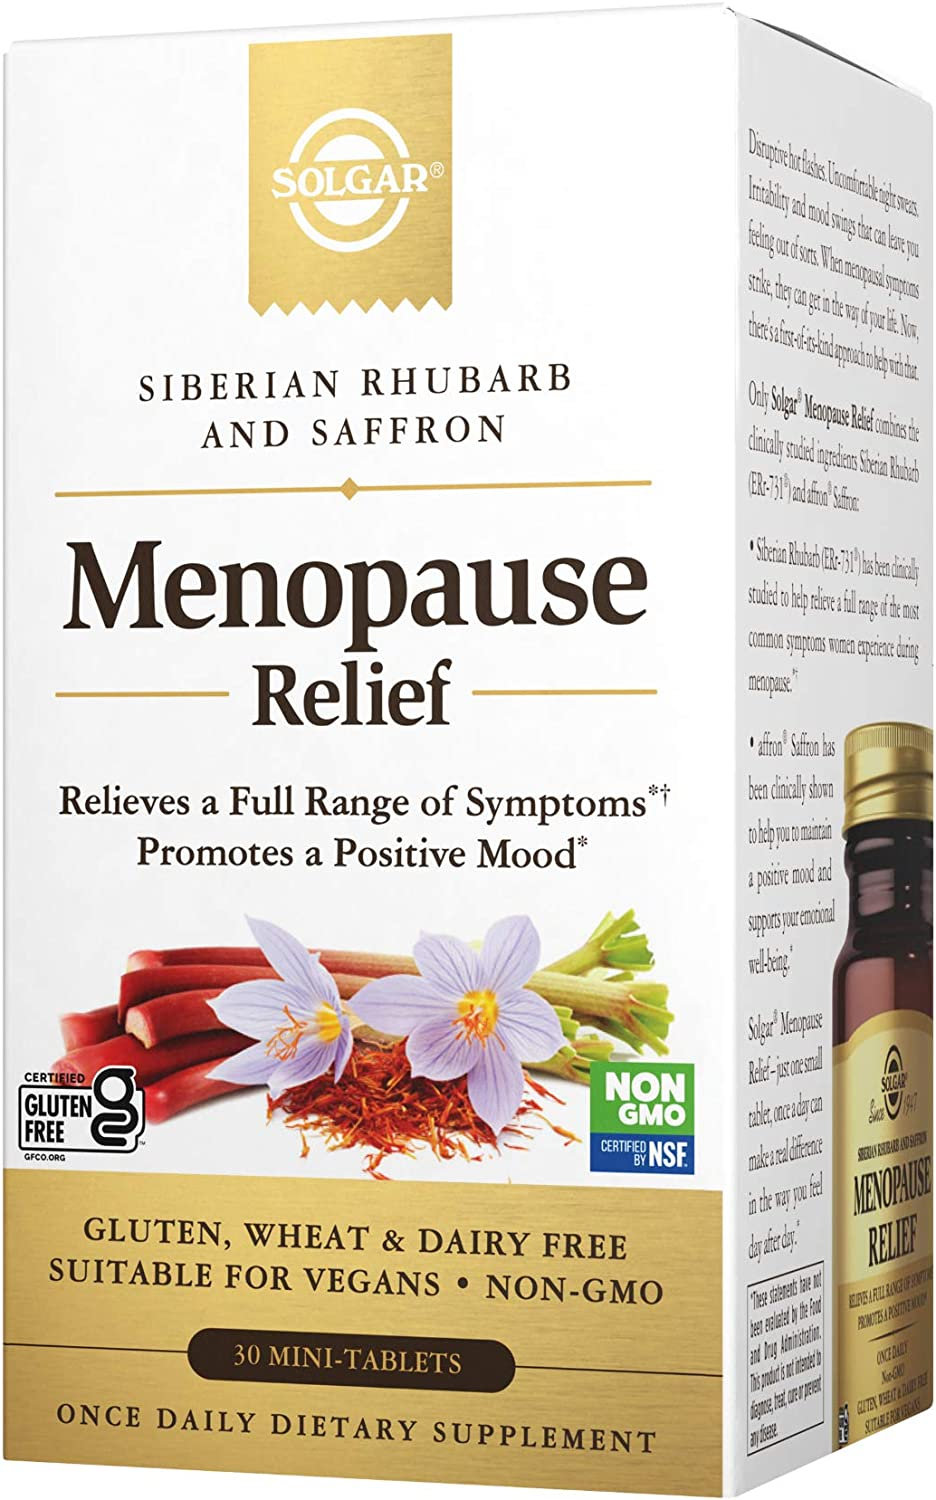 Solgar Menopause Relief - 30 Tablets - Helps Relieve Hot Flashes, Anxiety, Exhaustion, Irritability, Sleep Disturbances & More - Promotes a Positive Mood - Non-GMO, Gluten Free, Vegan